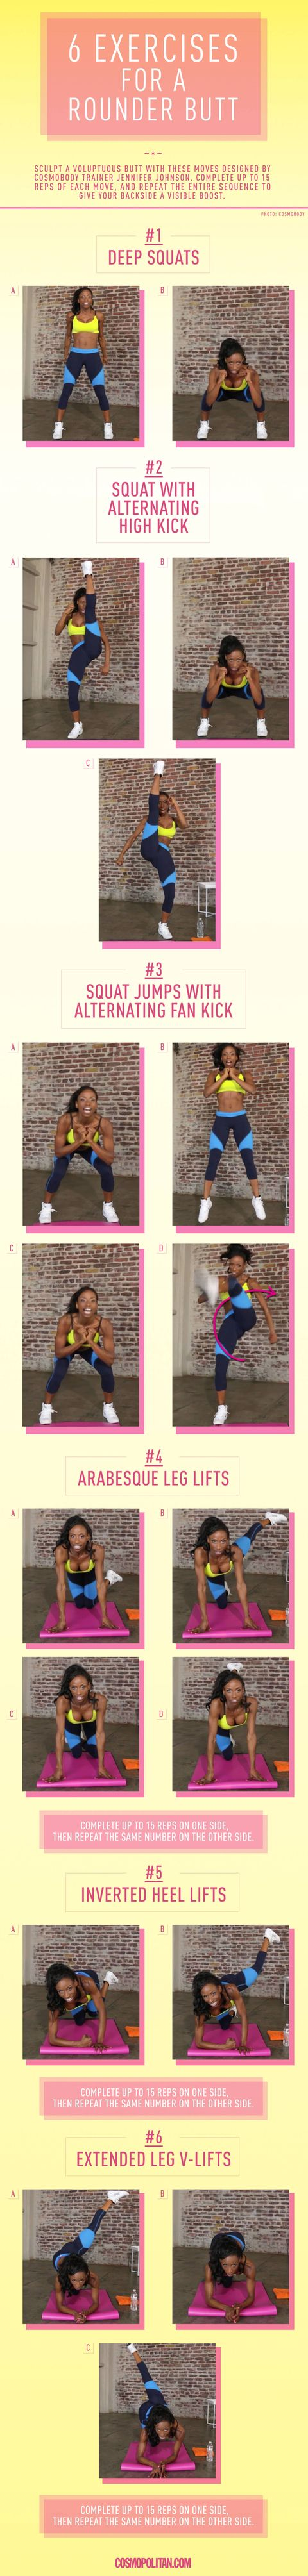 Round Butt Workout - 6 Exercises For A Rounder Butt-7243